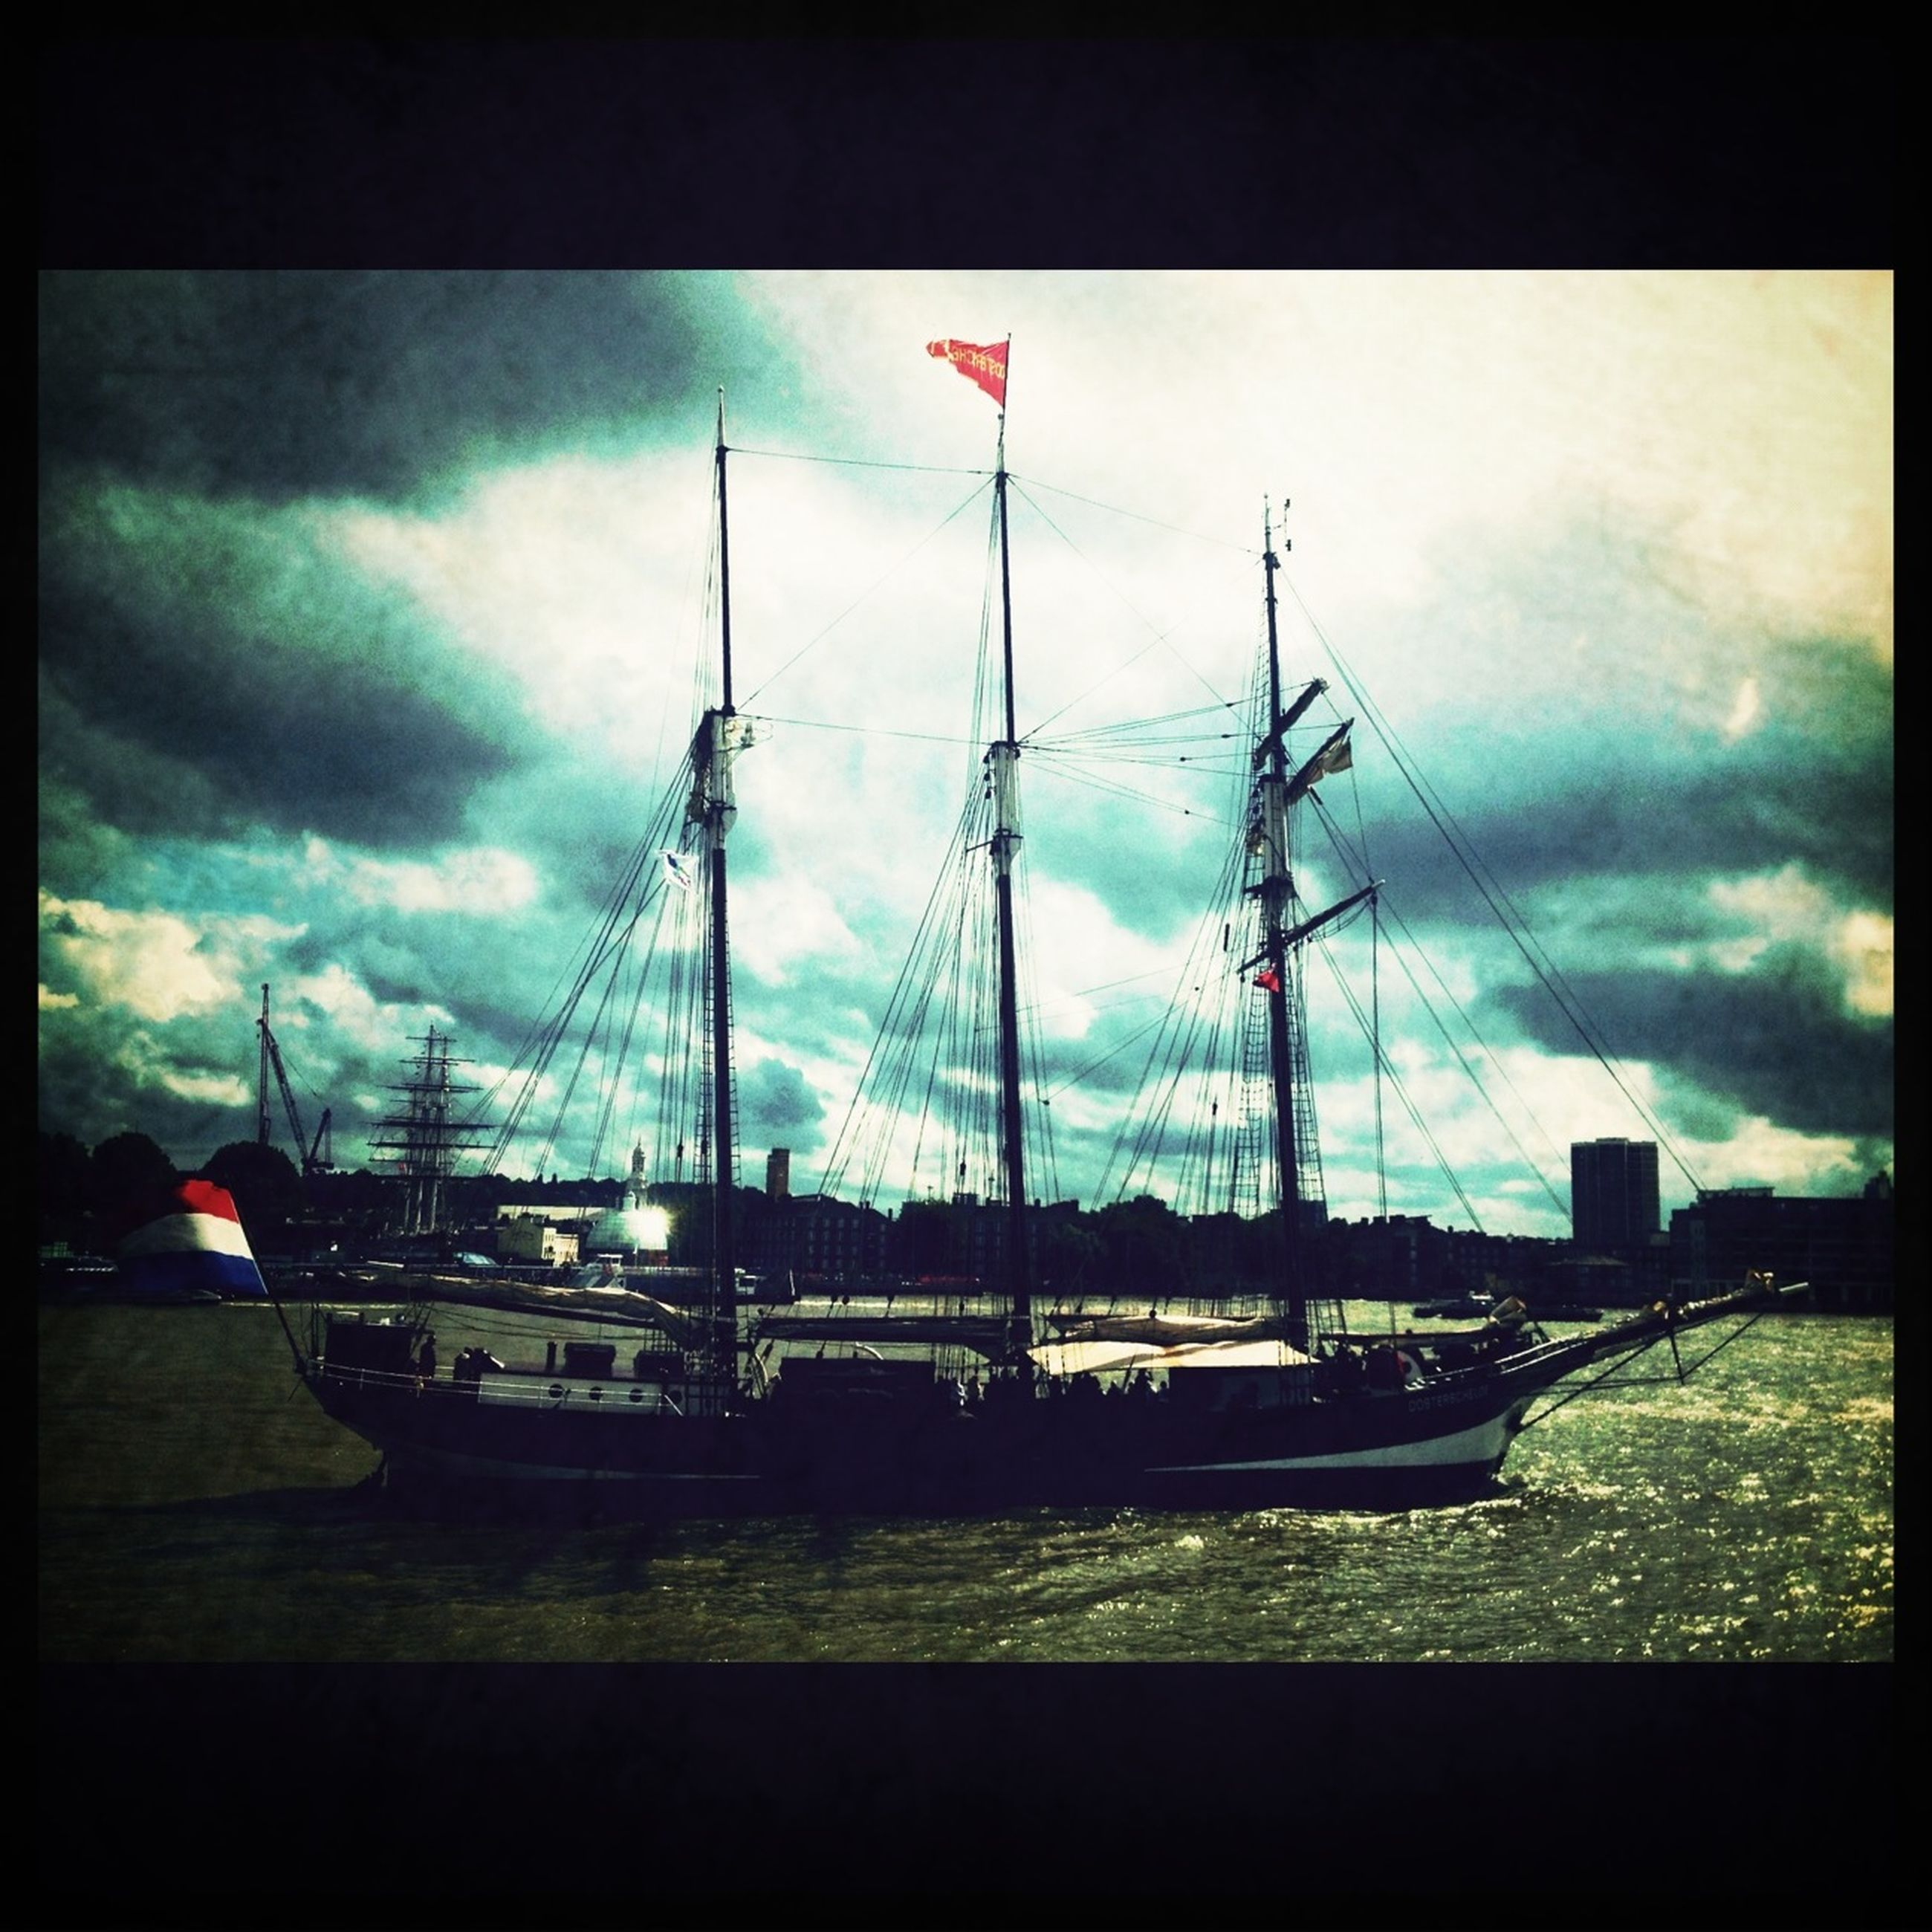 transportation, transfer print, mode of transport, nautical vessel, sky, auto post production filter, water, boat, cloud - sky, moored, cloudy, cloud, harbor, sea, mast, weather, travel, overcast, waterfront, nature